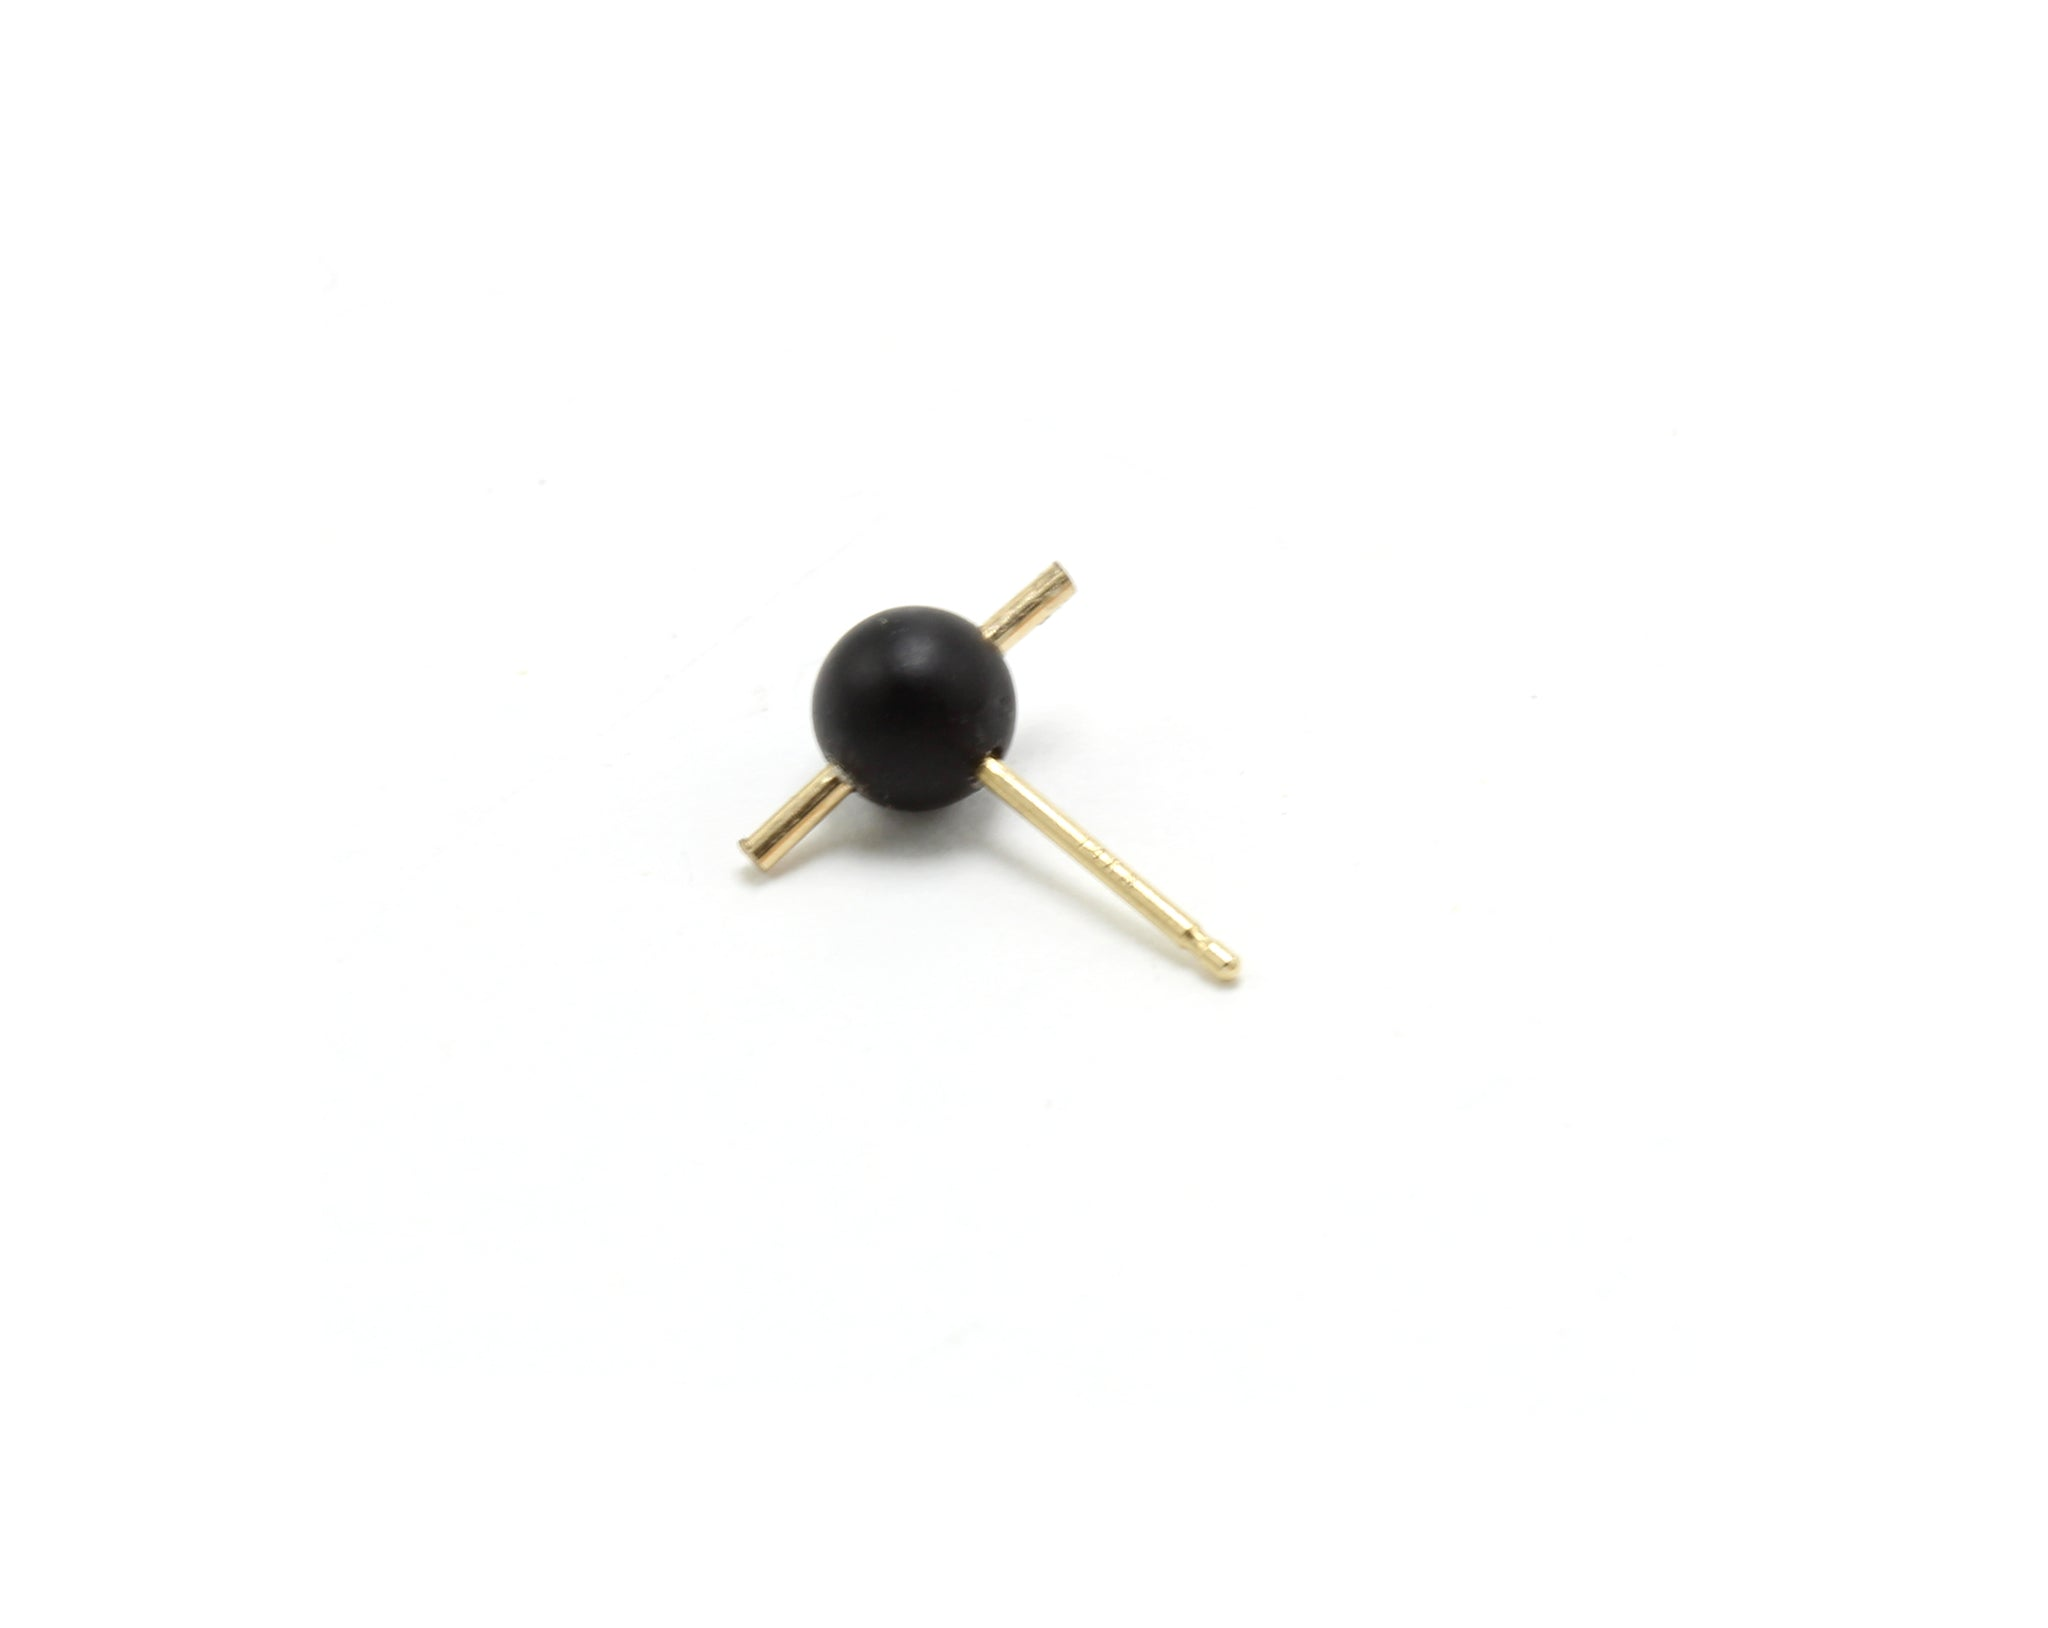 ORION SINGLE STUD / ONYX